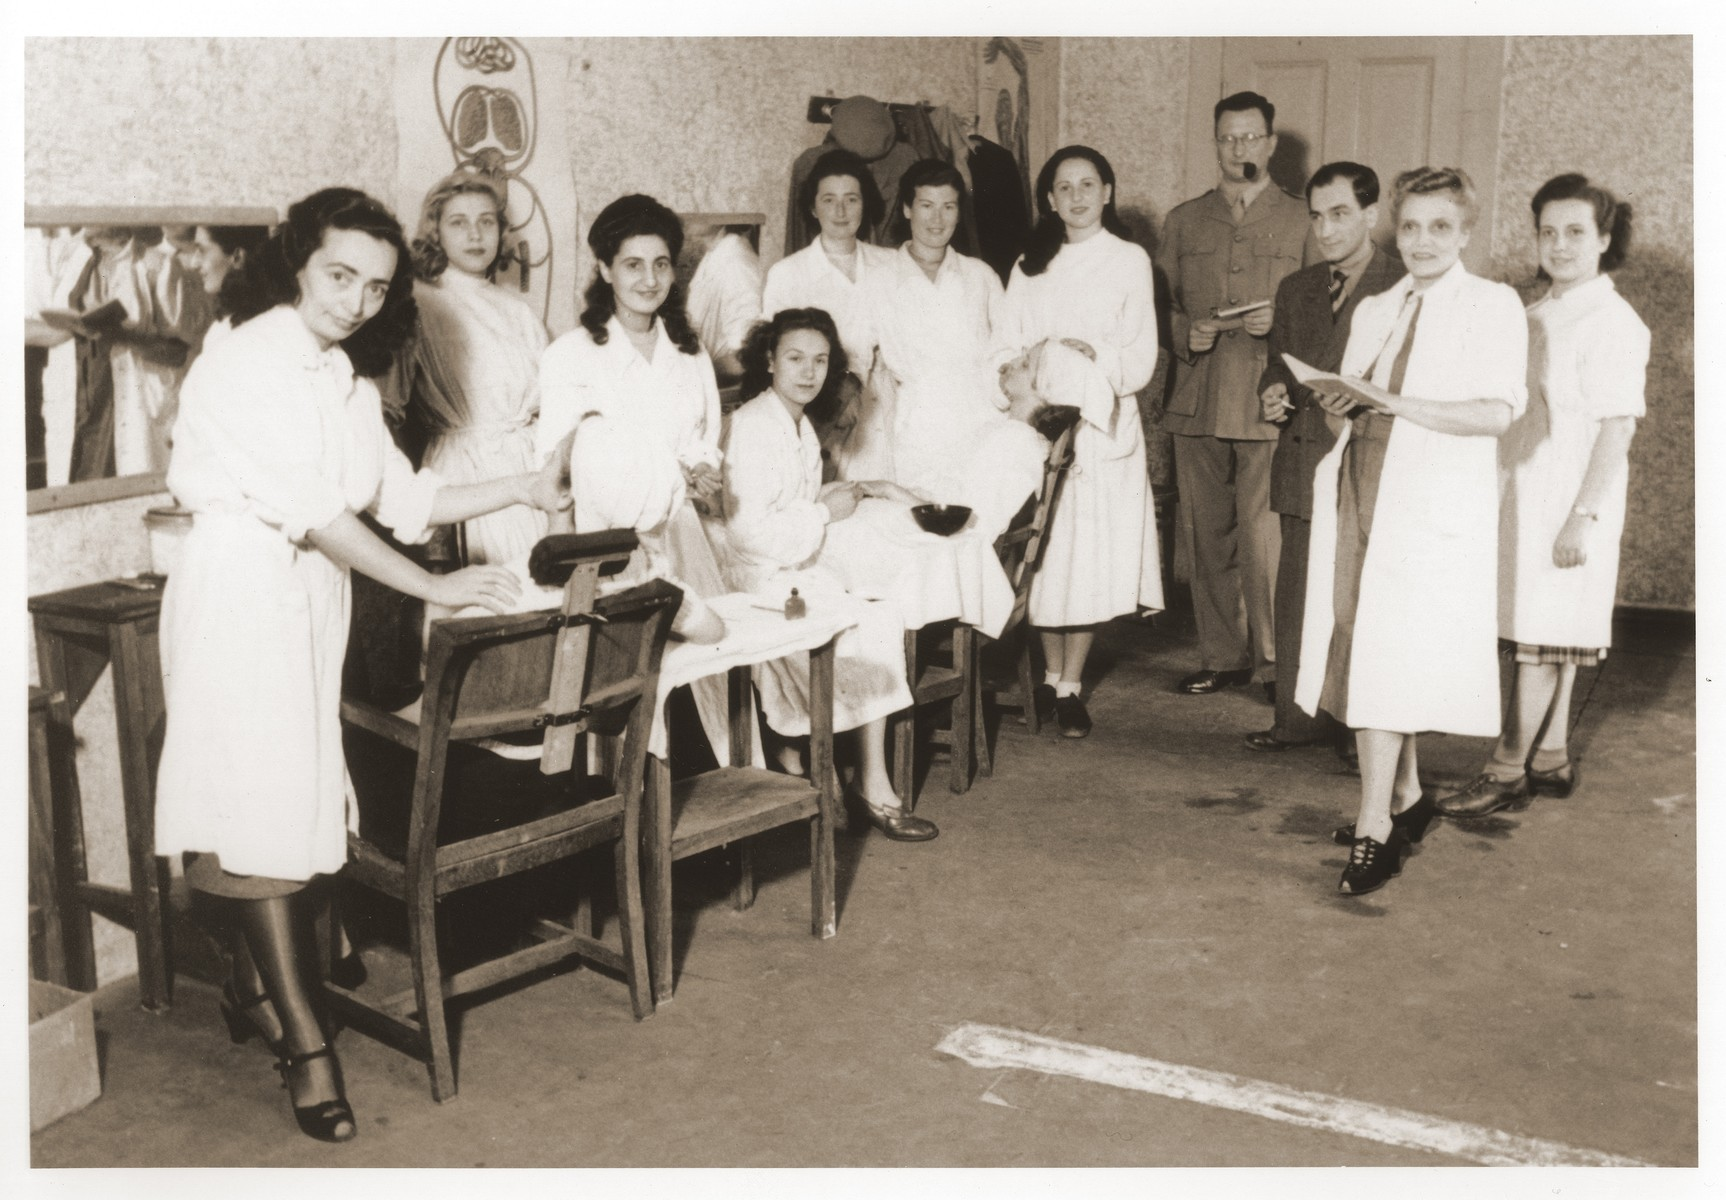 Dorothea Isaacsohn attends a beautician's class at the ORT school in Berlin.